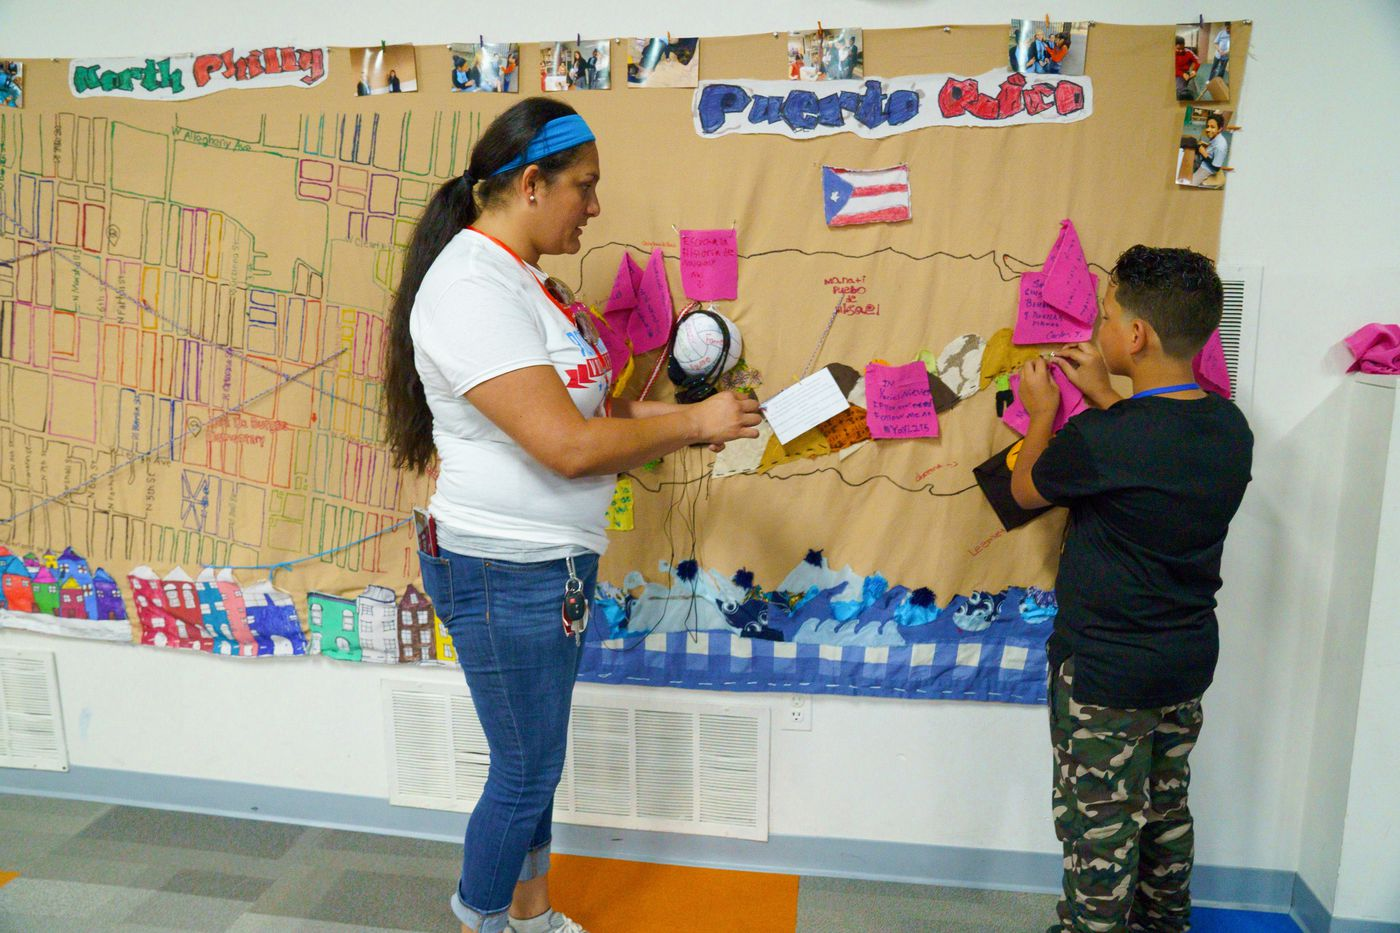 From rural villages to the gritty streets of Philly, kids displaced by Maria map their emotions